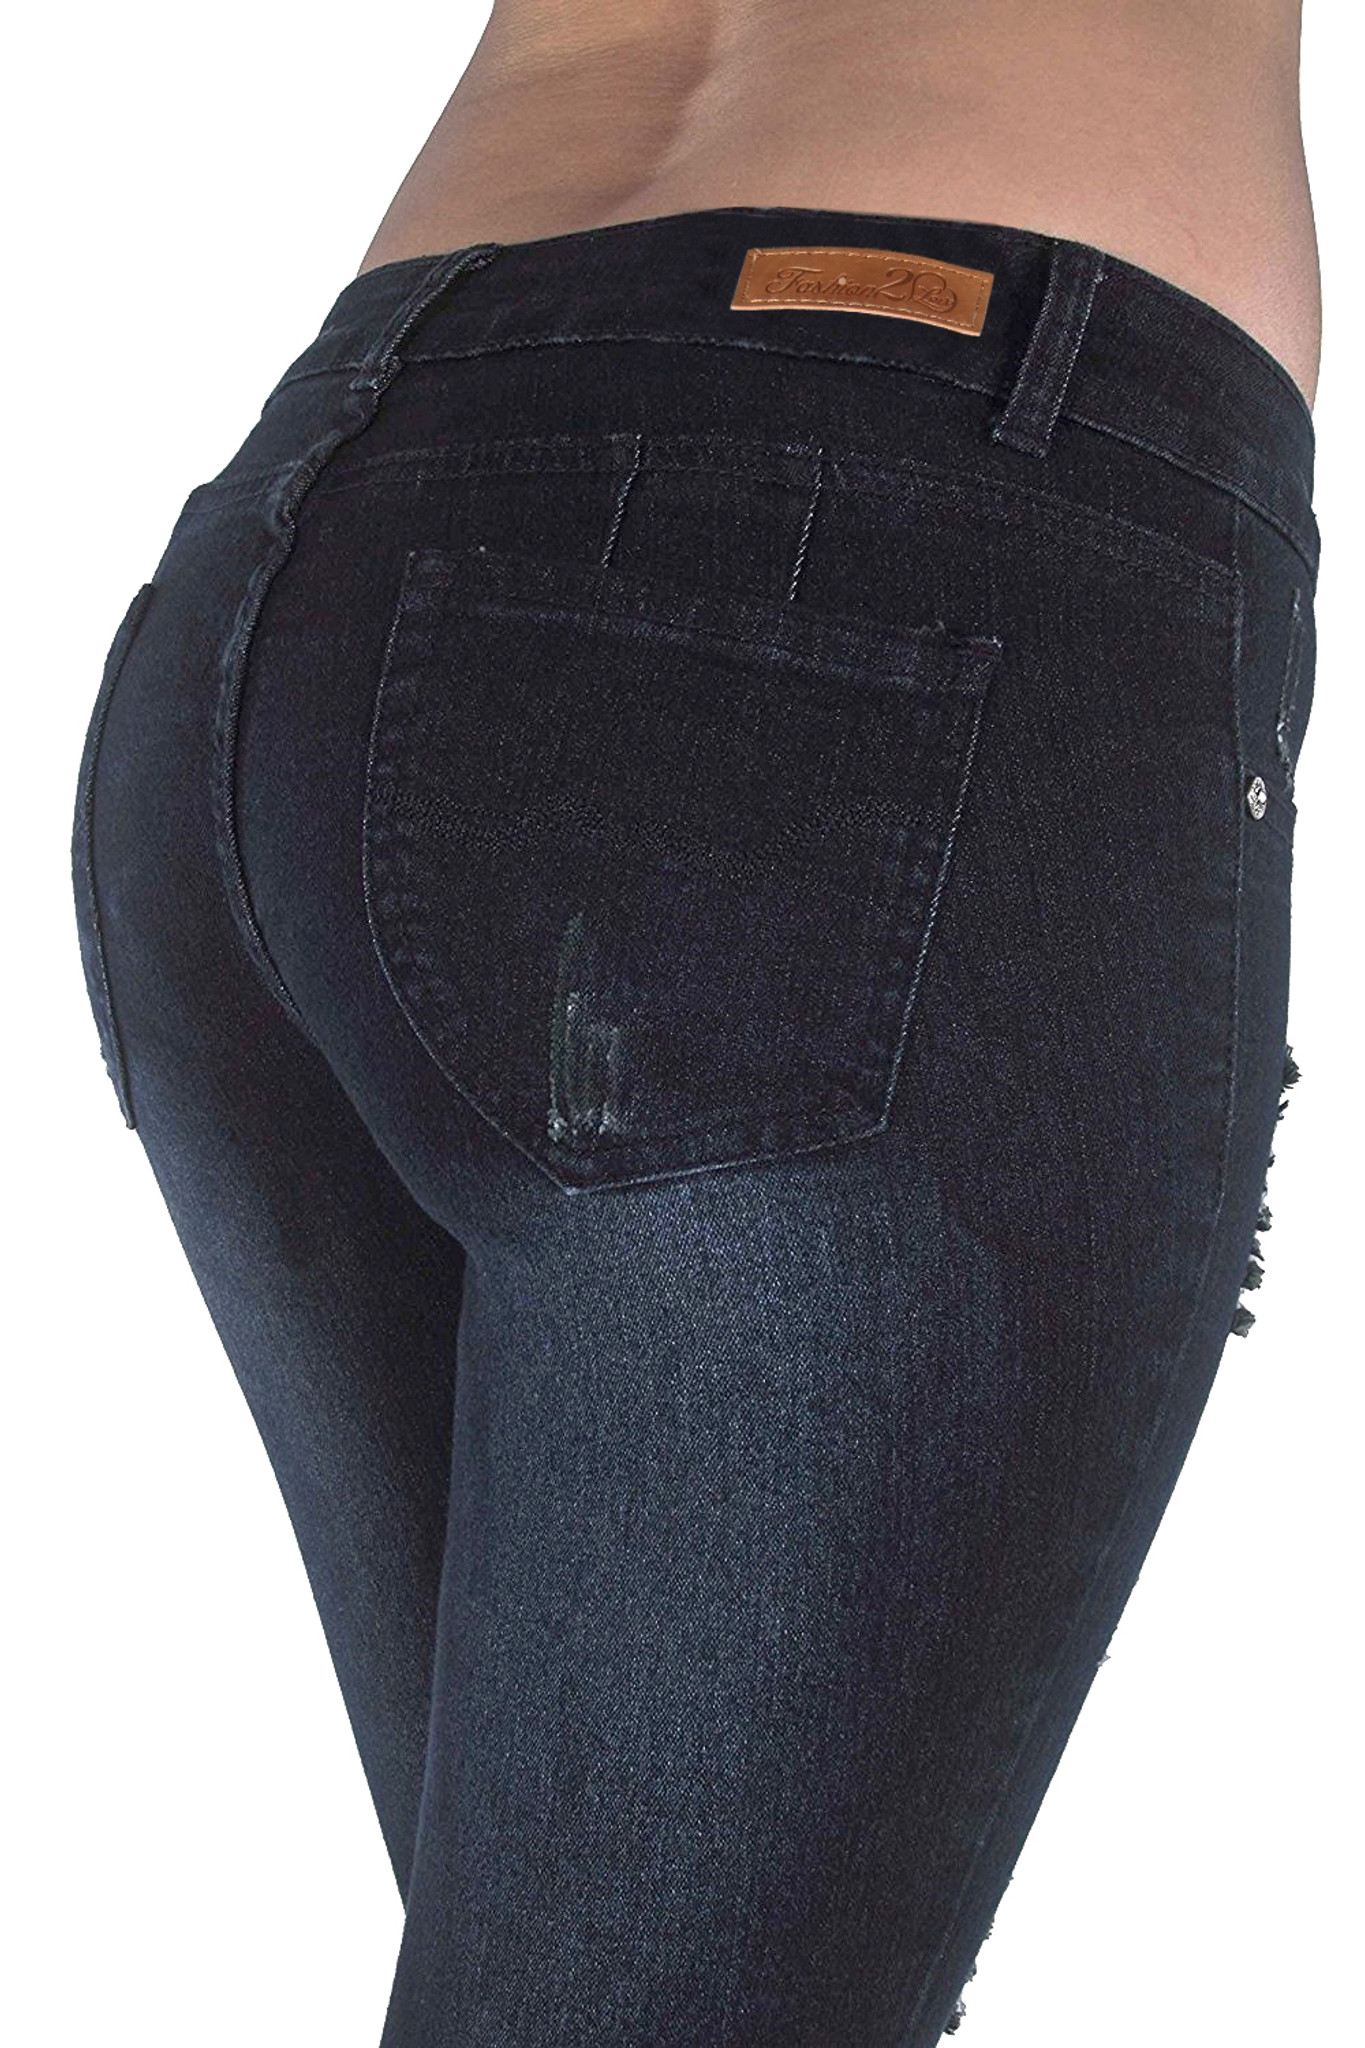 Style M486P – Plus Size Mid Waist Colombian Design Butt lift Ripped Skinny Jeans